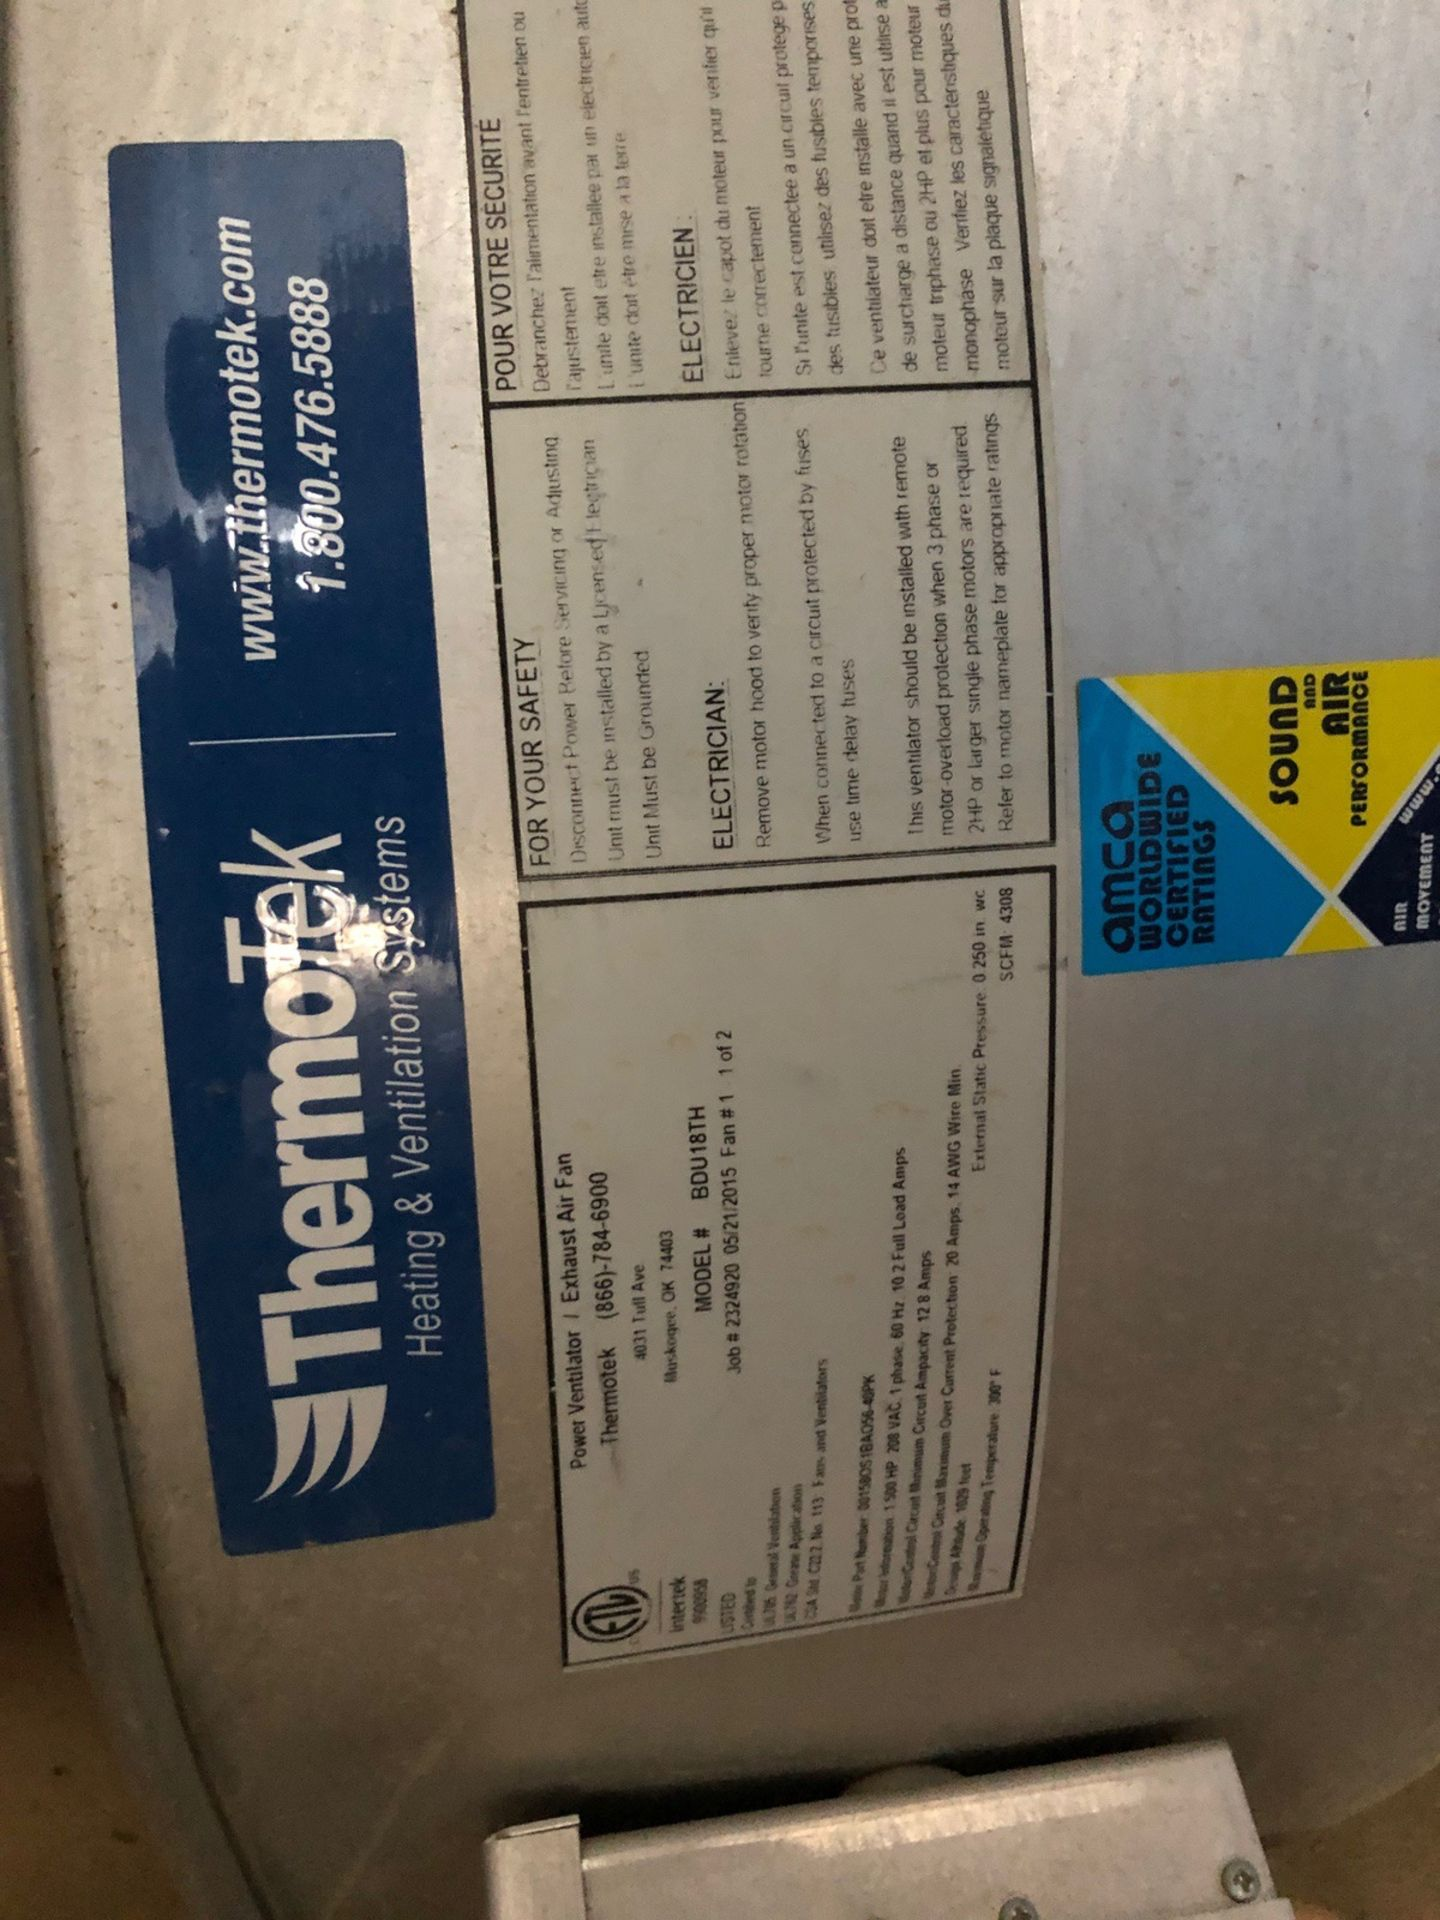 ThermoTek Exhaust fan; model #BDU18TH (In compressor Shed) - Subj to Bulk - Image 2 of 2